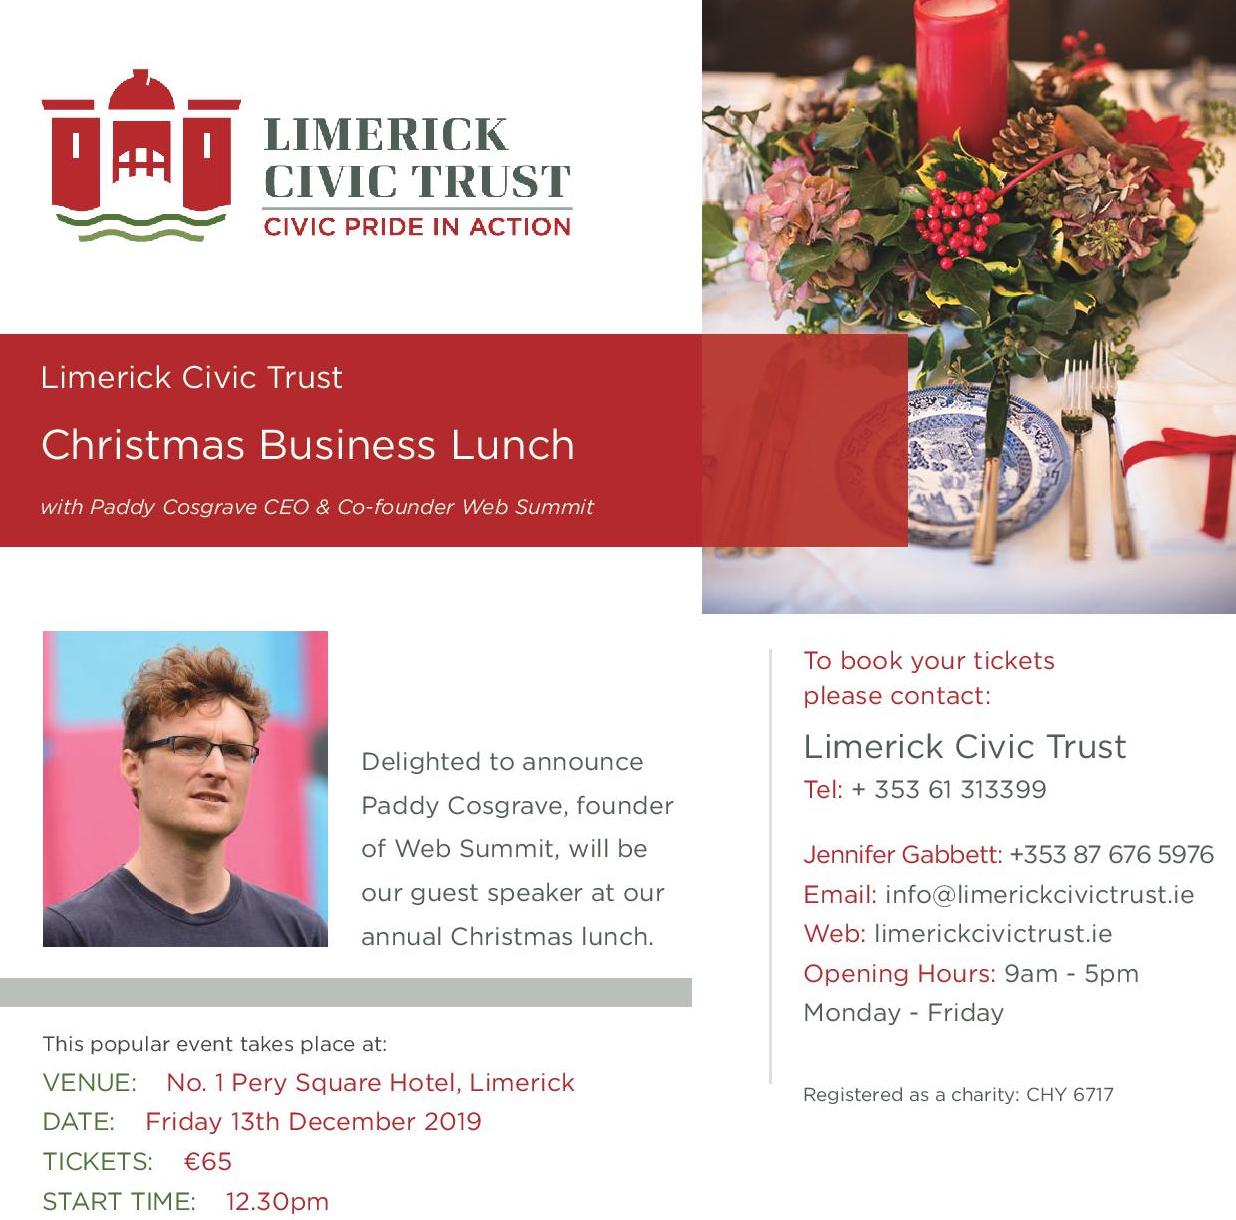 Limerick Civic Trust Lunch